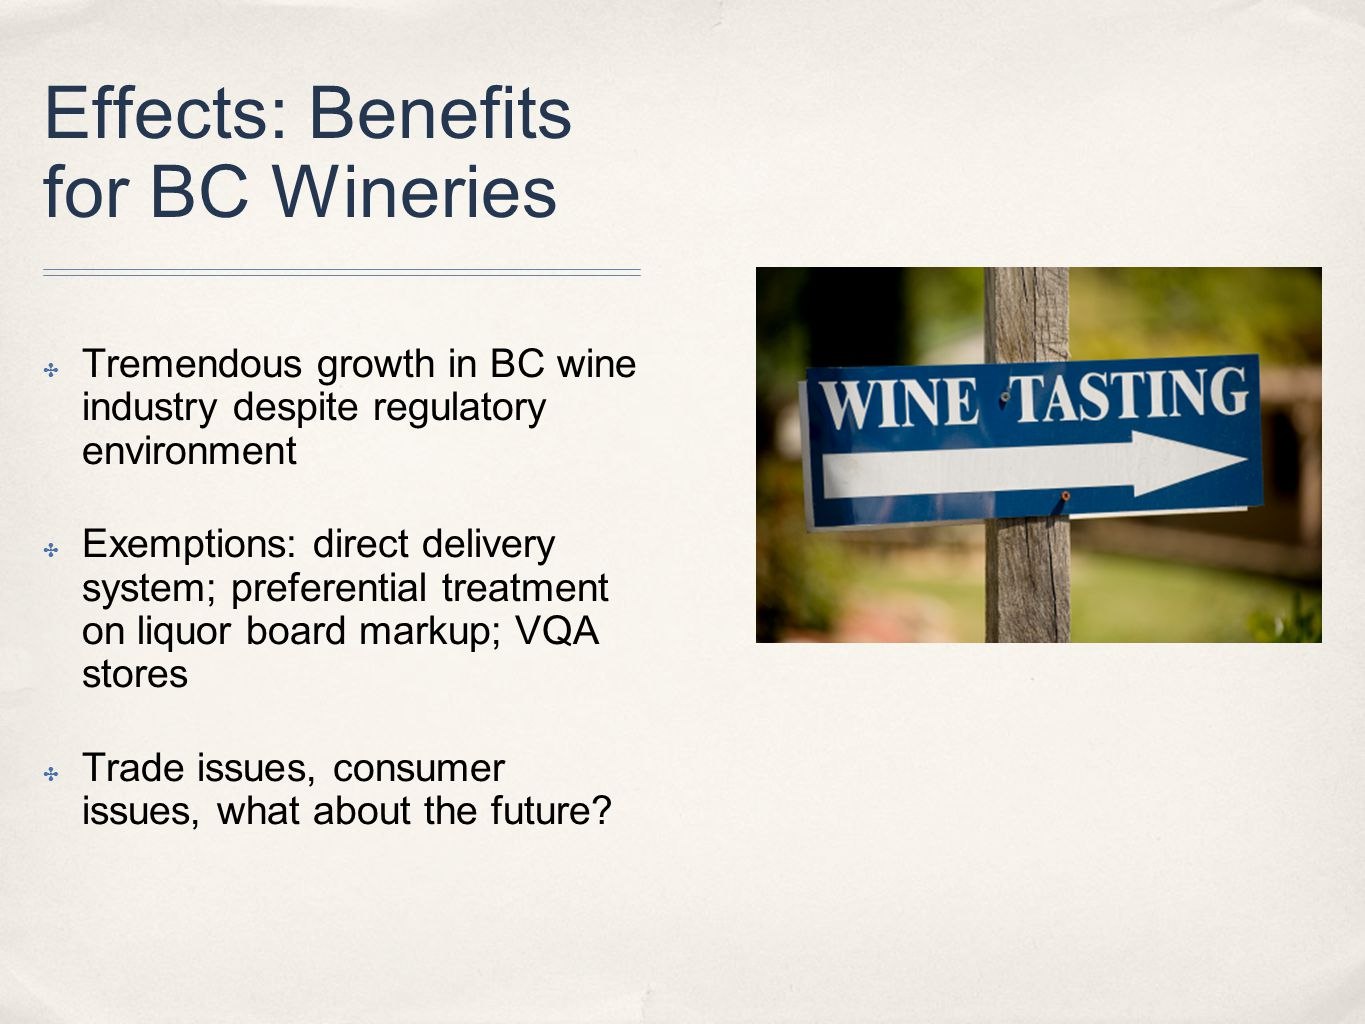 Effects: Benefits for BC Wineries ✤ Tremendous growth in BC wine industry despite regulatory environment ✤ Exemptions: direct delivery system; preferential treatment on liquor board markup; VQA stores ✤ Trade issues, consumer issues, what about the future?